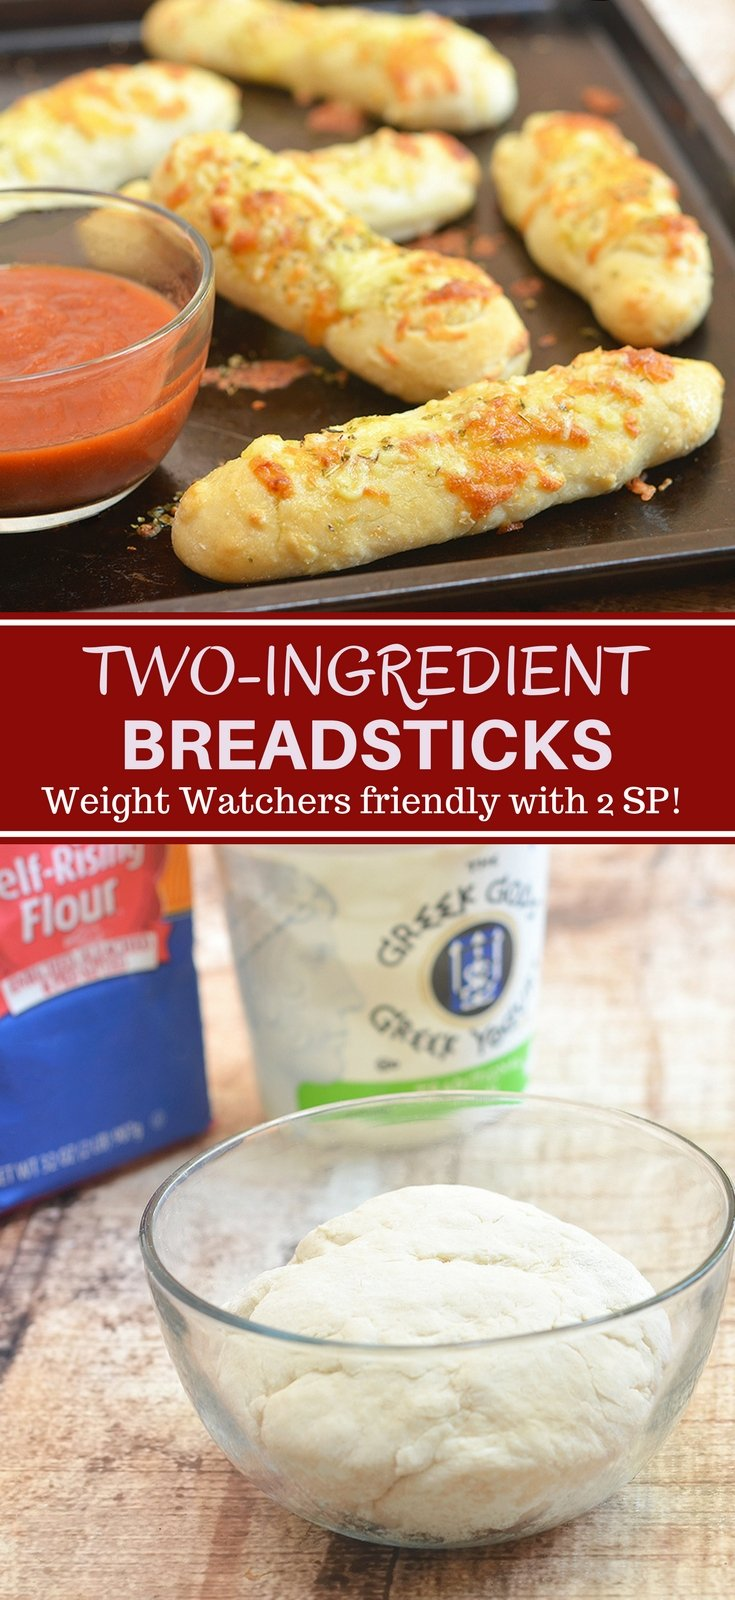 Two-Ingredient Breadsticks with two simple ingredients you probably already have in the kitchen! The versatile two-ingredient dough makes great pizza crust and is perfect for flatbreads, pretzel bites, calzones, and bagels. Weight watchers friendly with 2 smart points per serving!